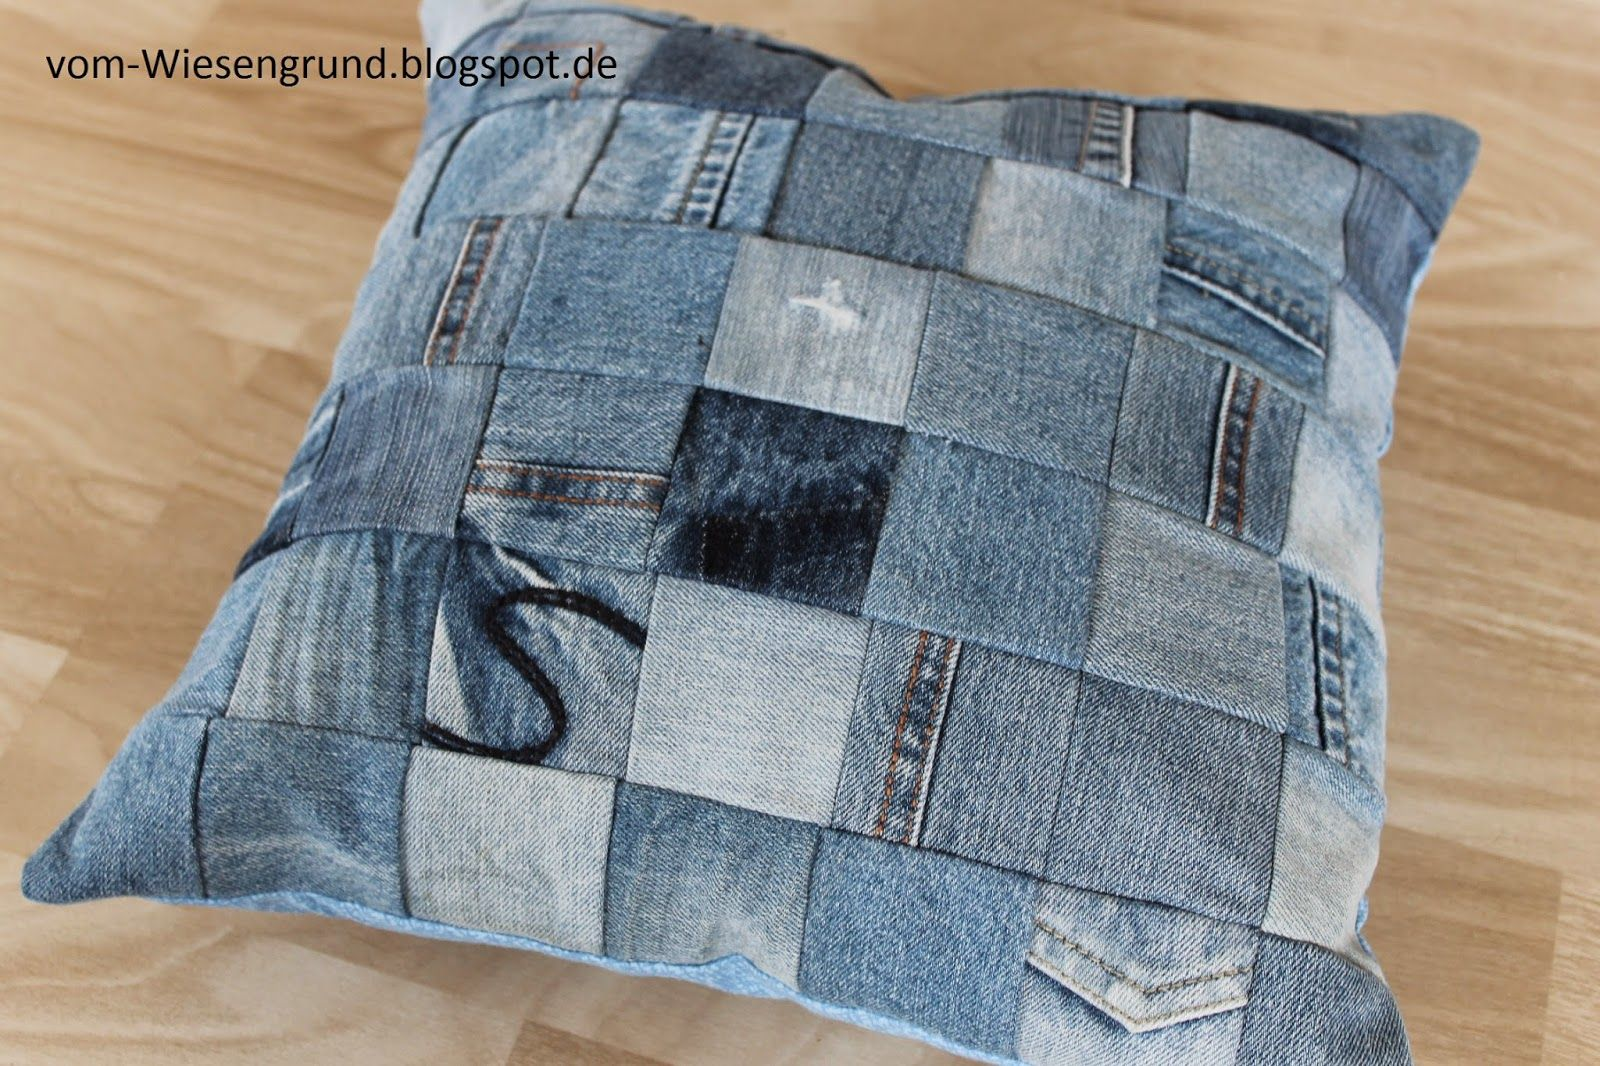 kissenh lle aus jeans pillowcase made from old pairs of jeans upcycling jeans upcycling. Black Bedroom Furniture Sets. Home Design Ideas